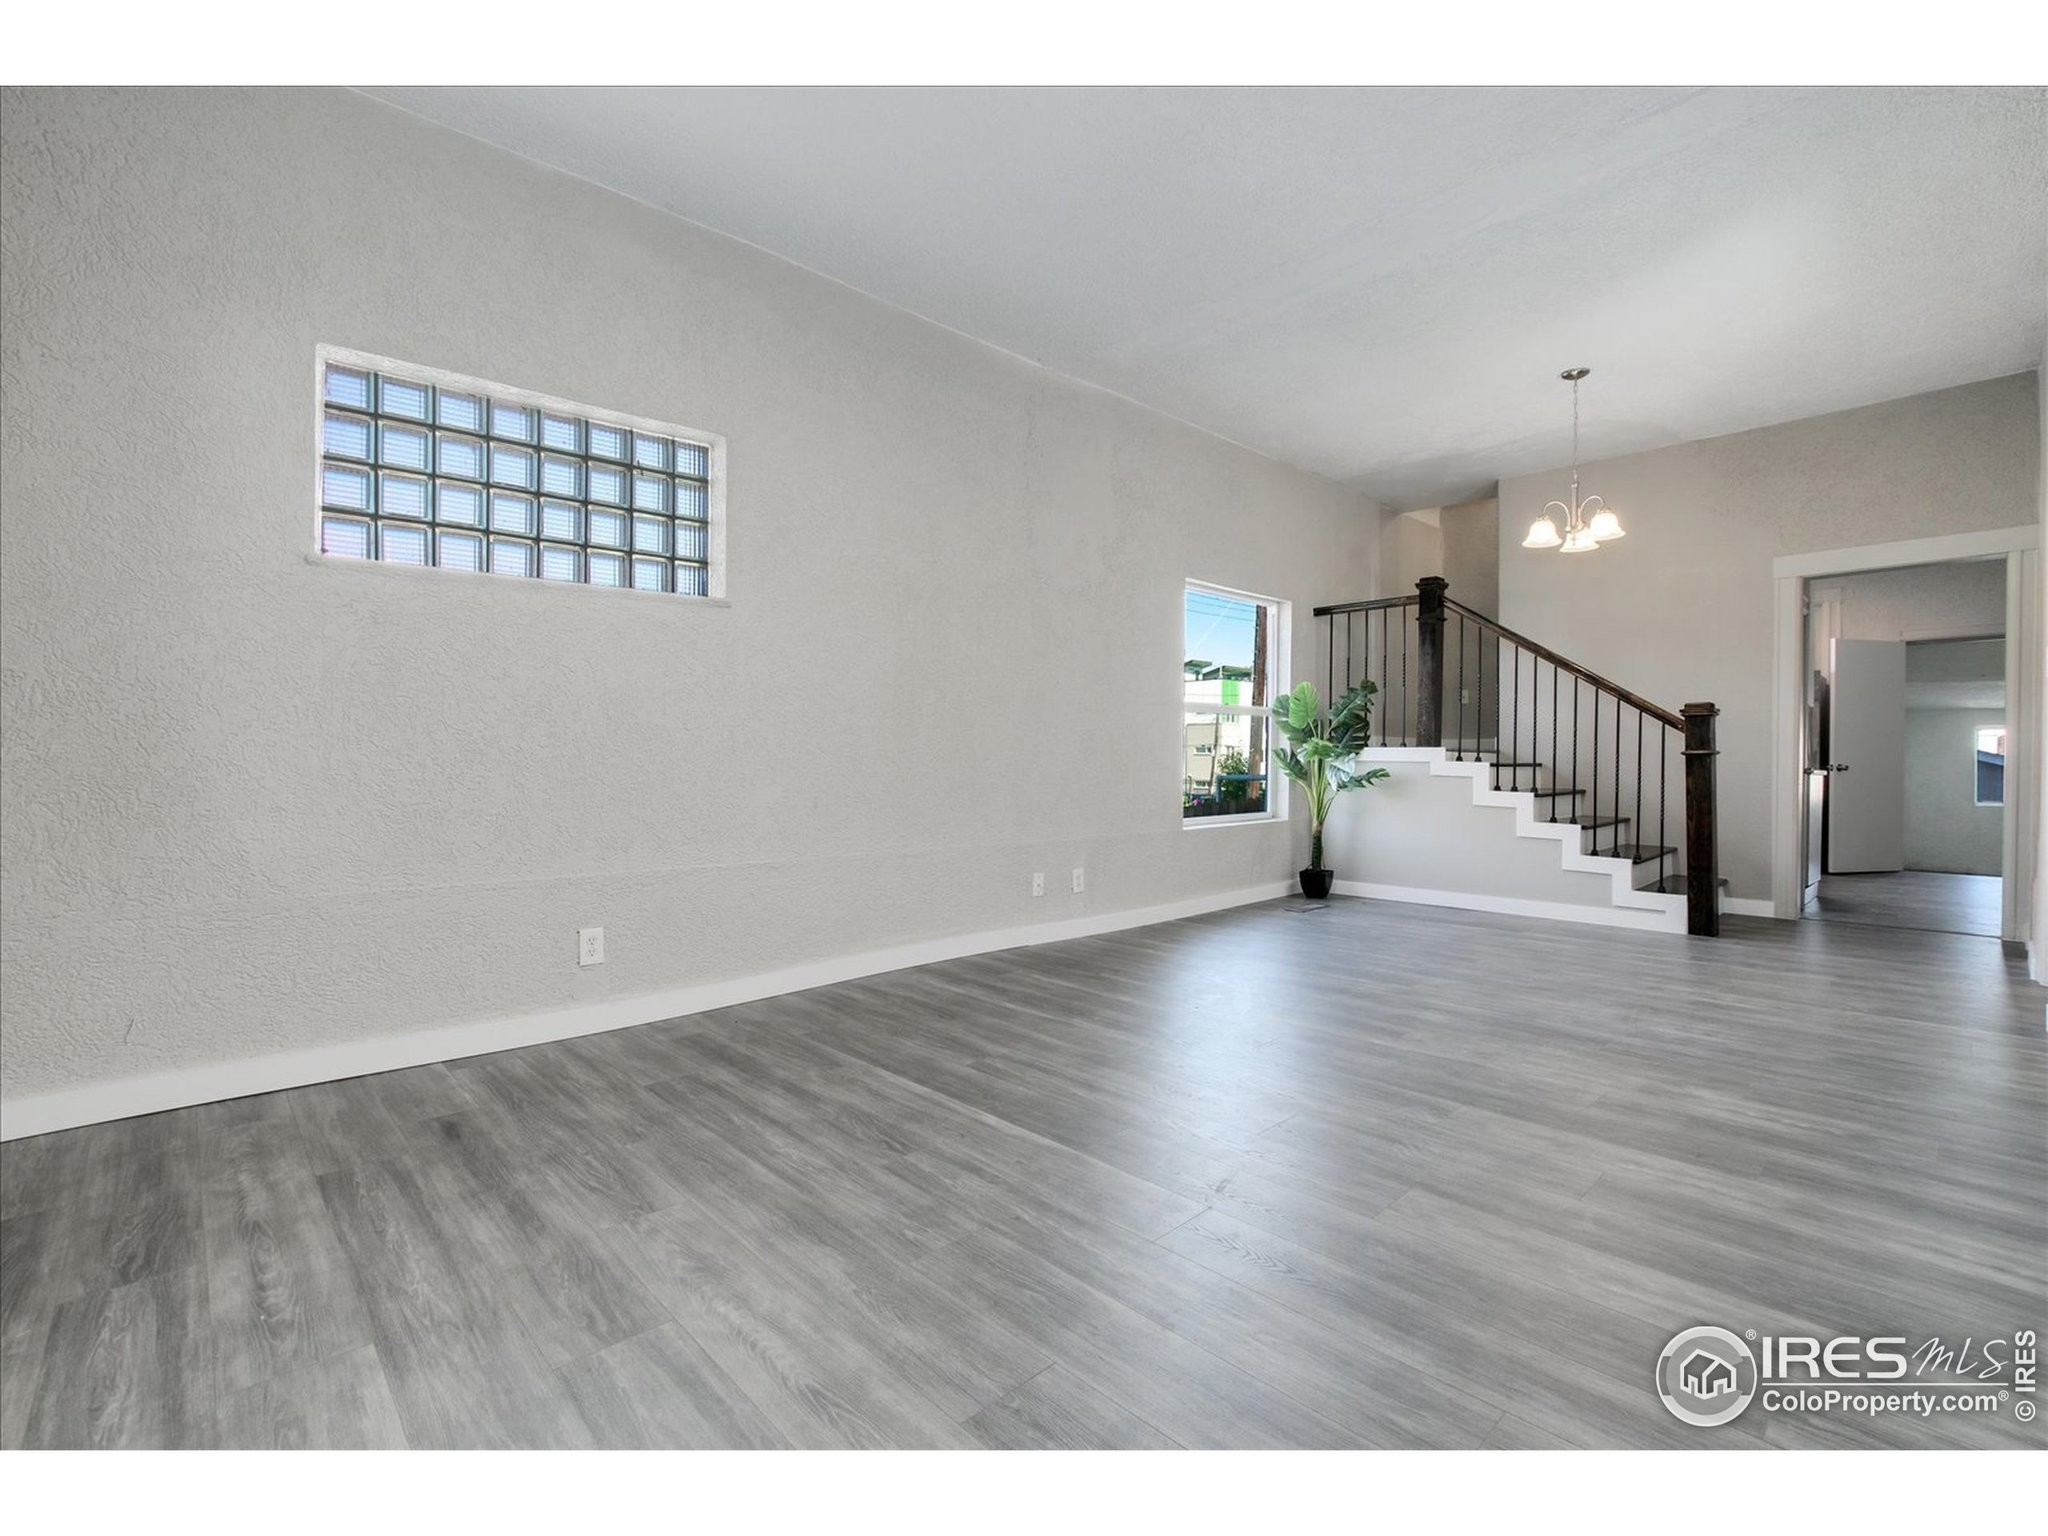 Updated 3-Bedroom House In Jefferson Park